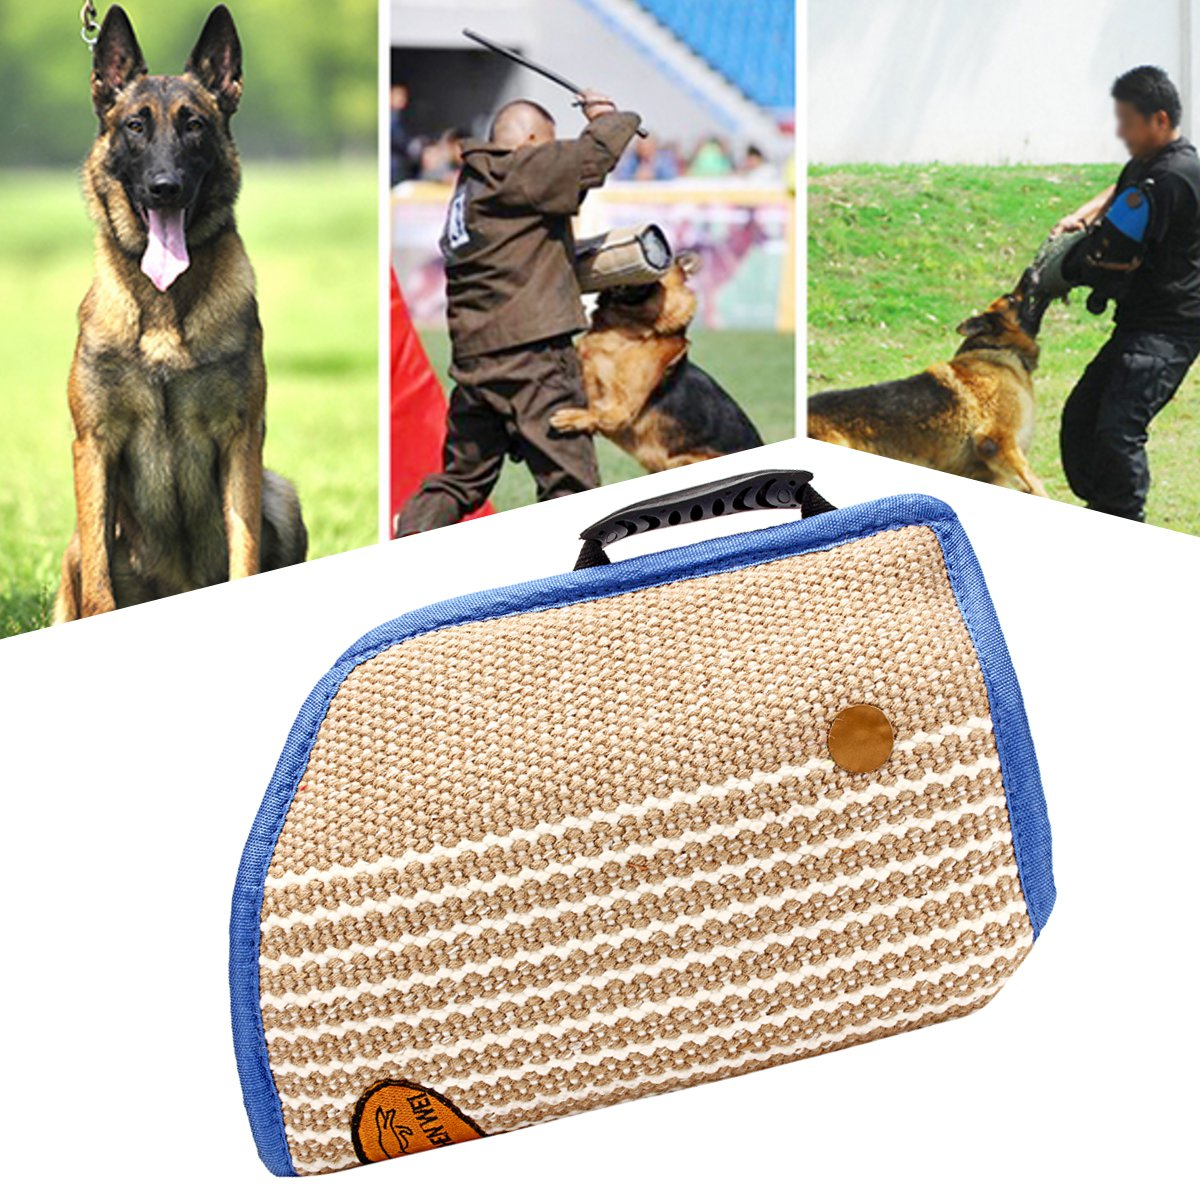 Outdoor Pet Dogs Bite Sleeve Arm Protection Safety Free Training Walking Tug Dog Training Supplies Young Medium Dogs Equipment